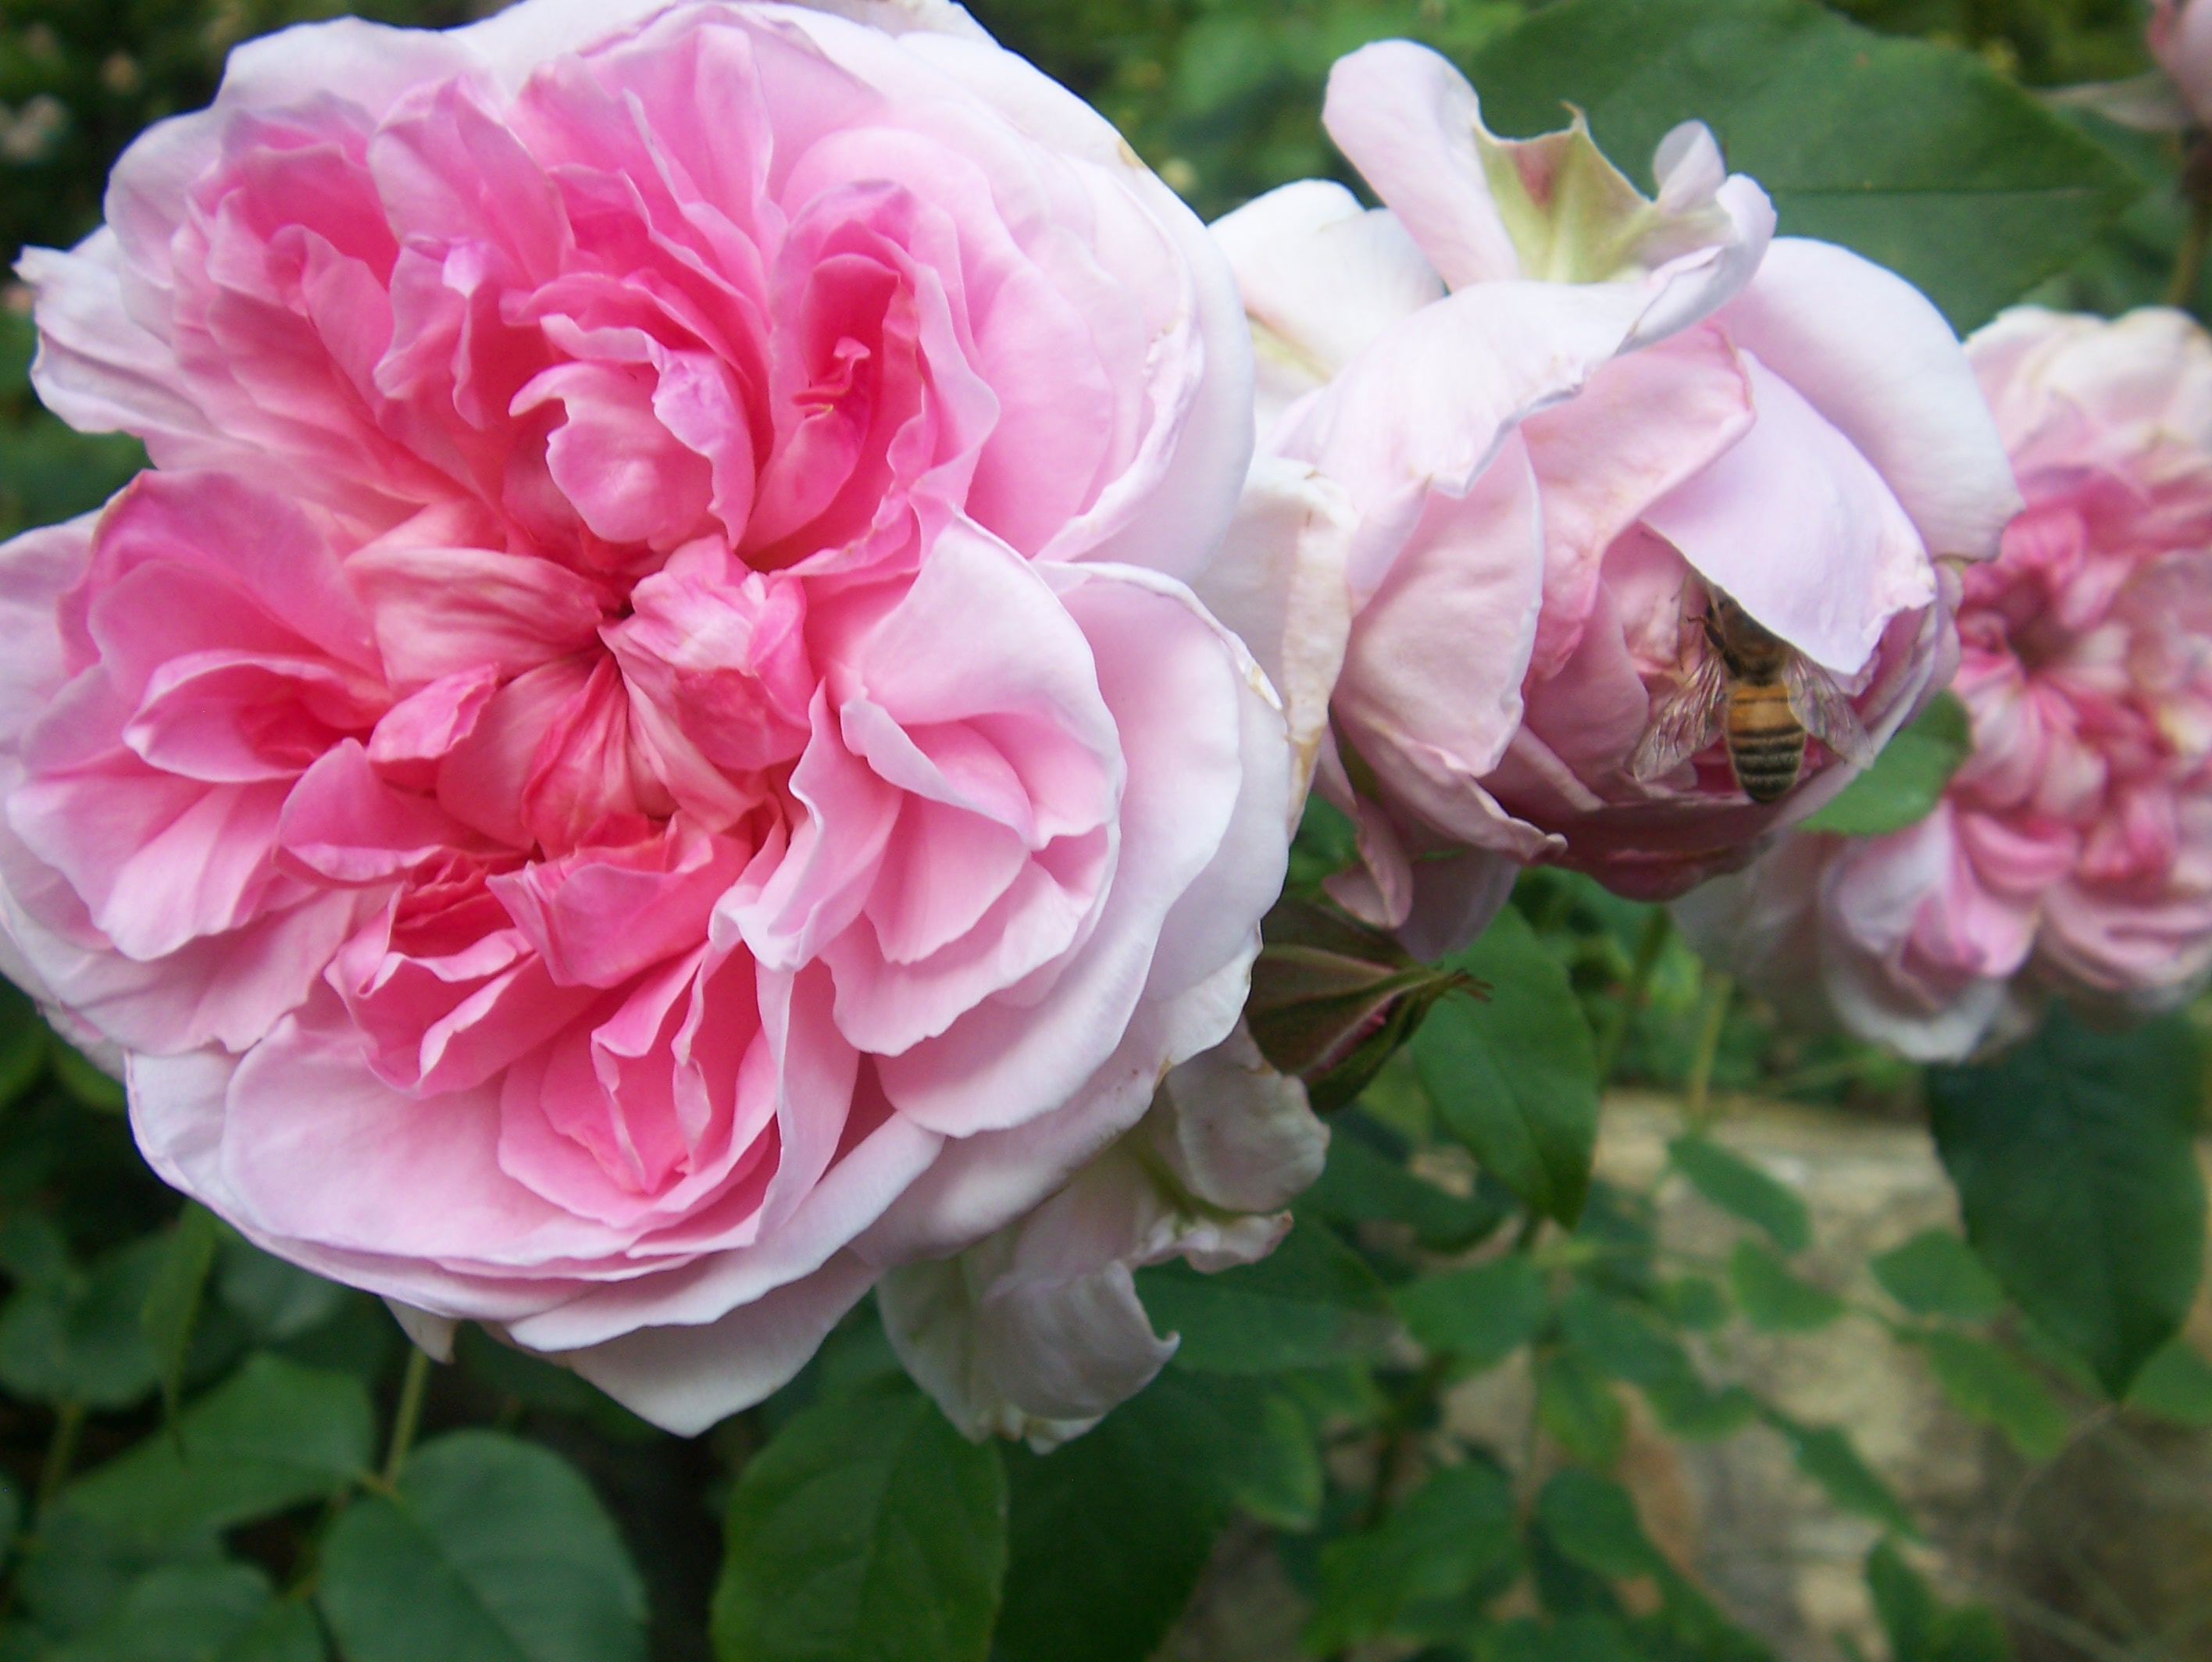 pink rose & bee, slimpaley